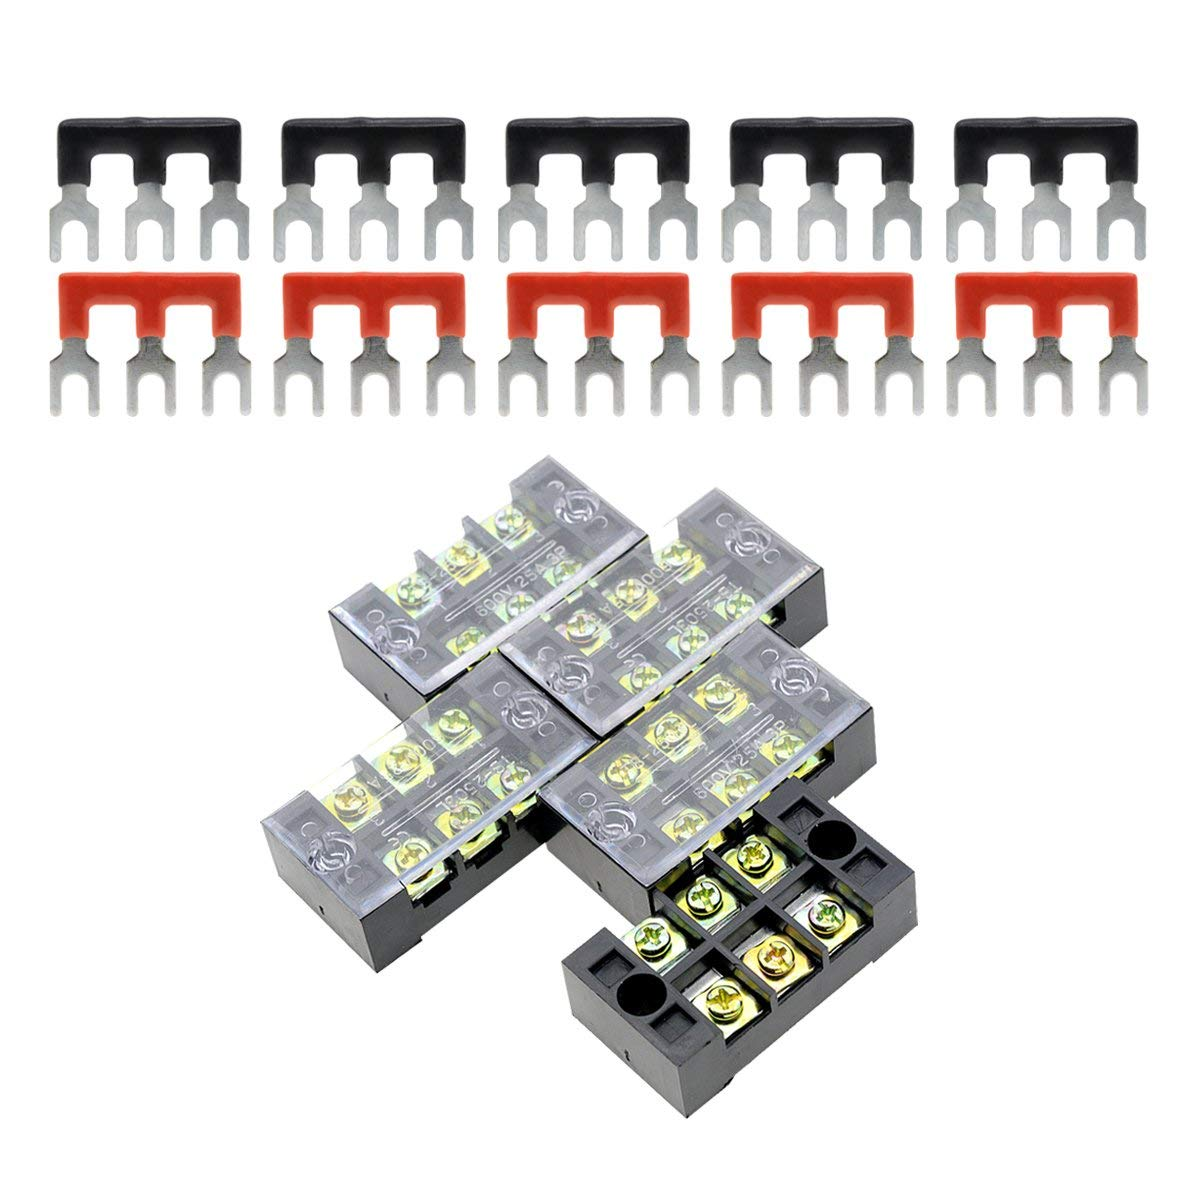 ZXHAO 380V 5A 12 Positions Dual Row Wire Connector Screw Terminal Barrier Block 5pcs